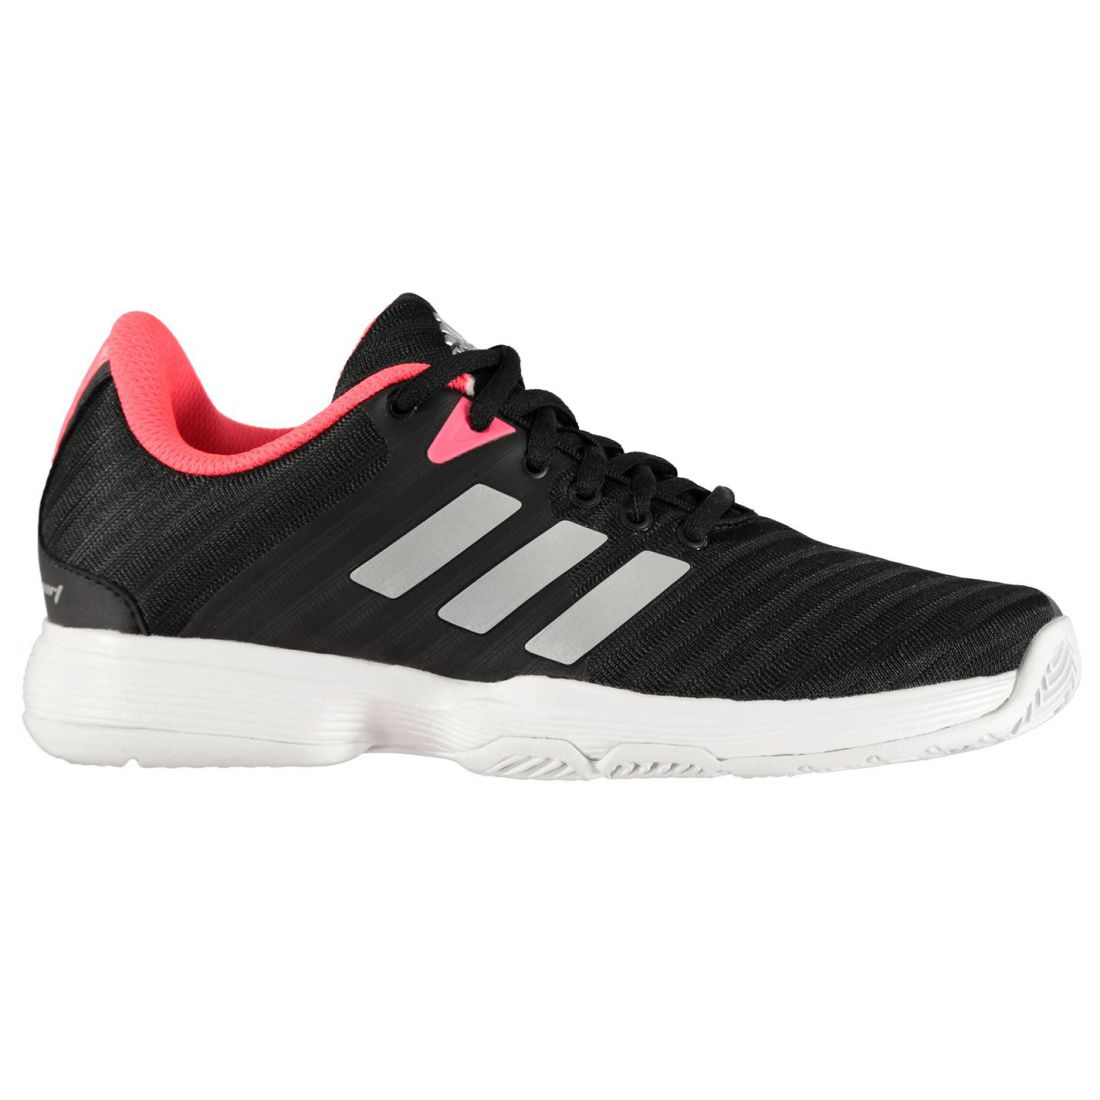 meet f6a97 afb8a adidas Womens Barricade Court Trainers Tennis Shoes Padded Ankle Collar